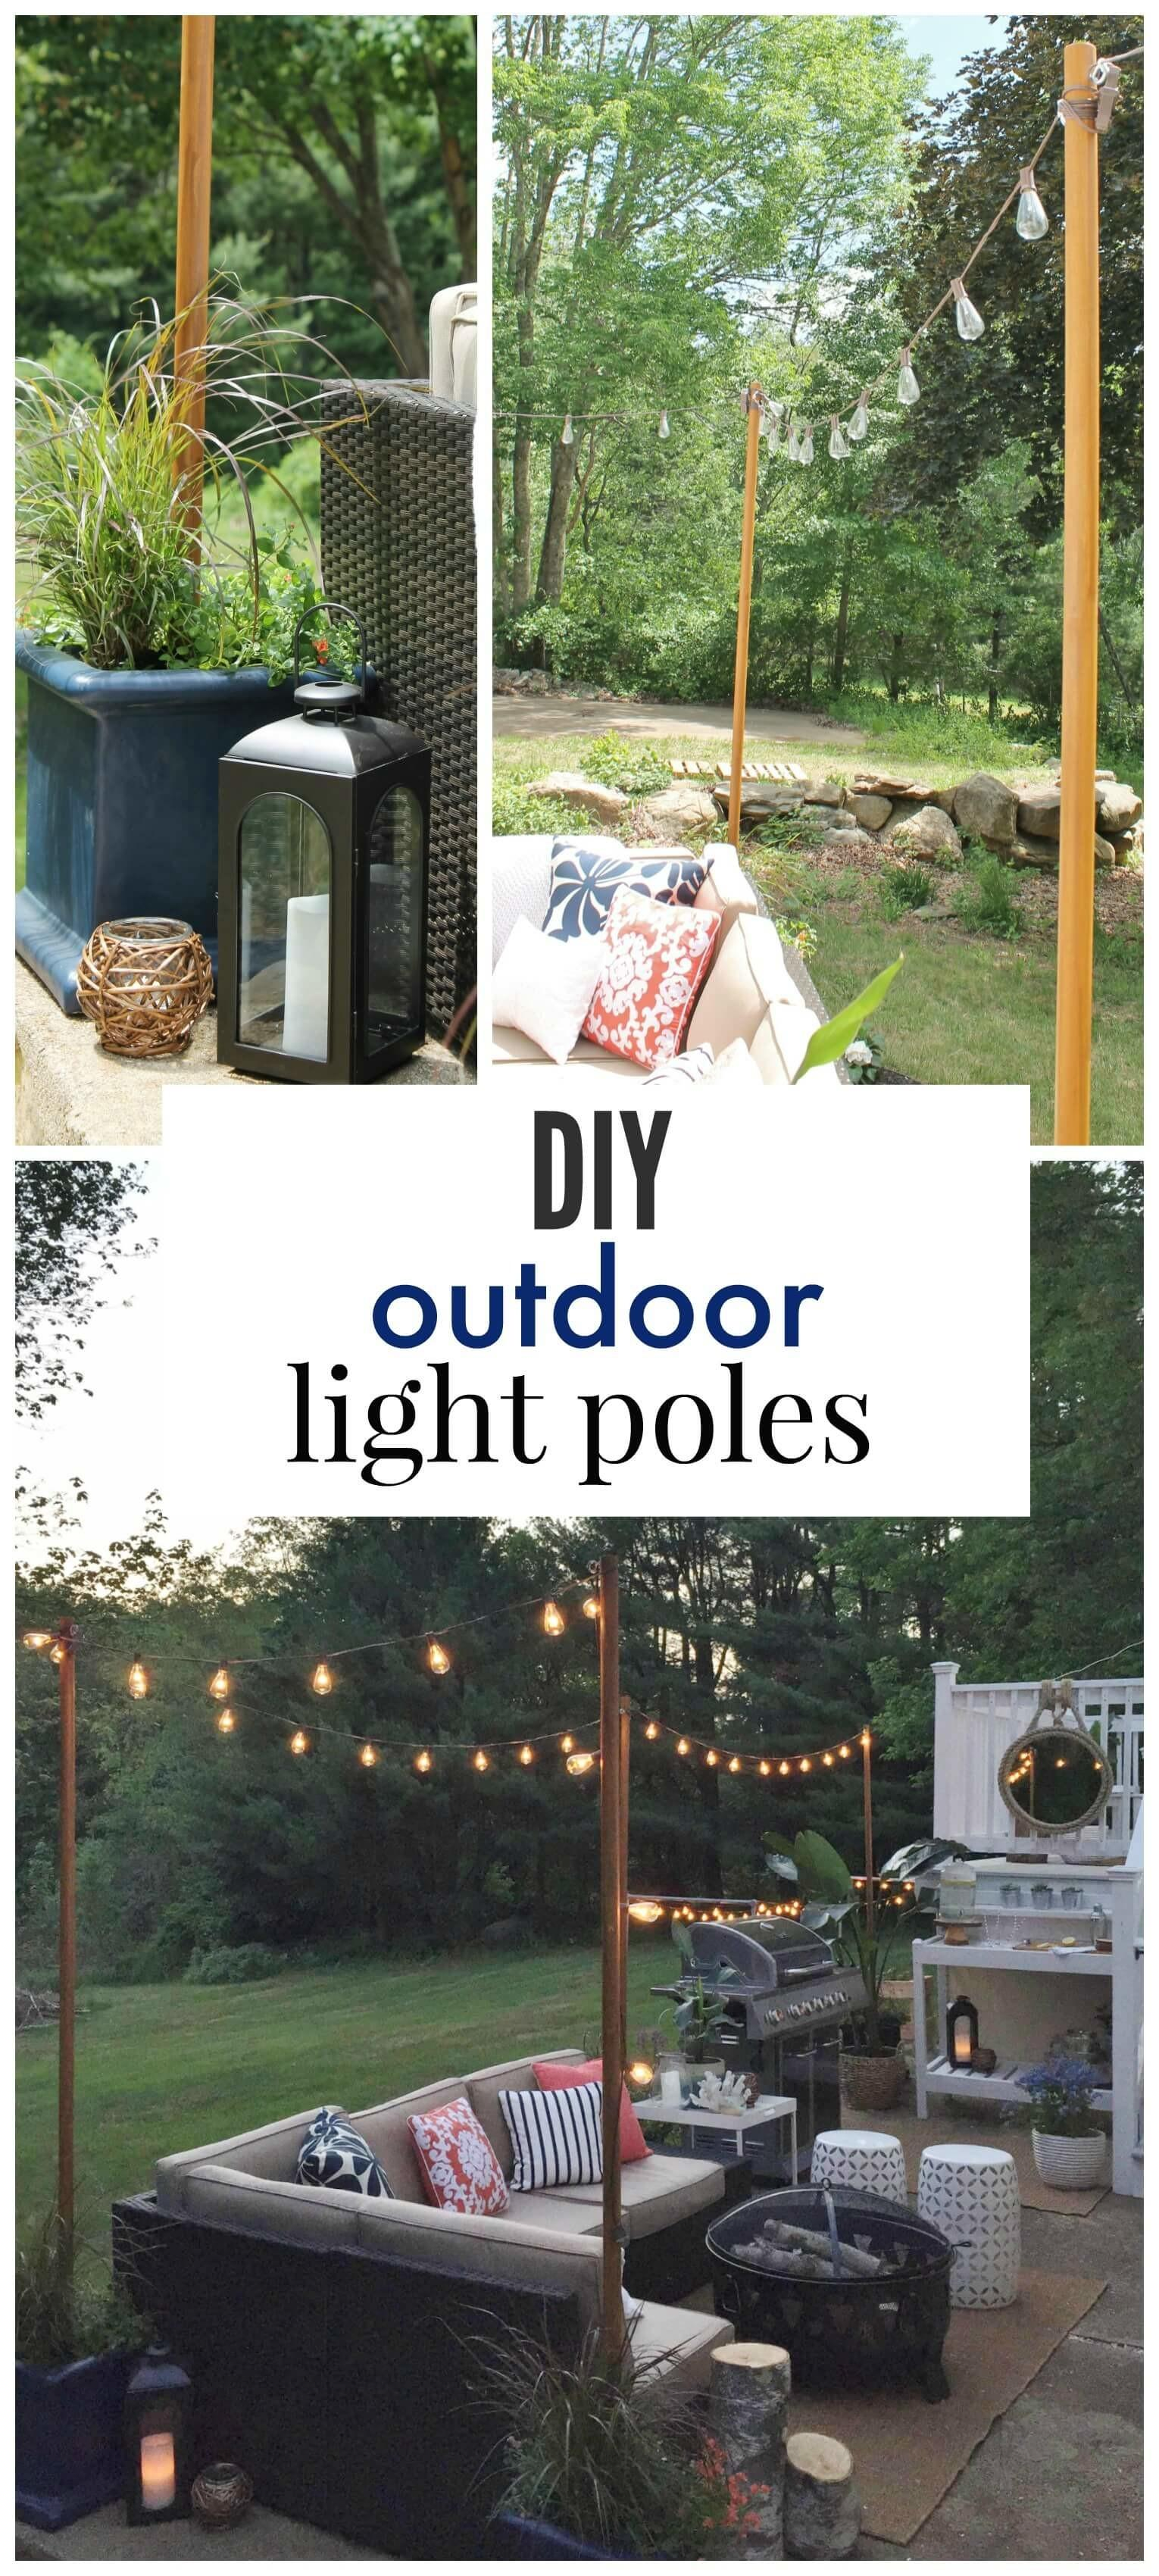 Summery Diy Backyard Projects Functional Outdoor